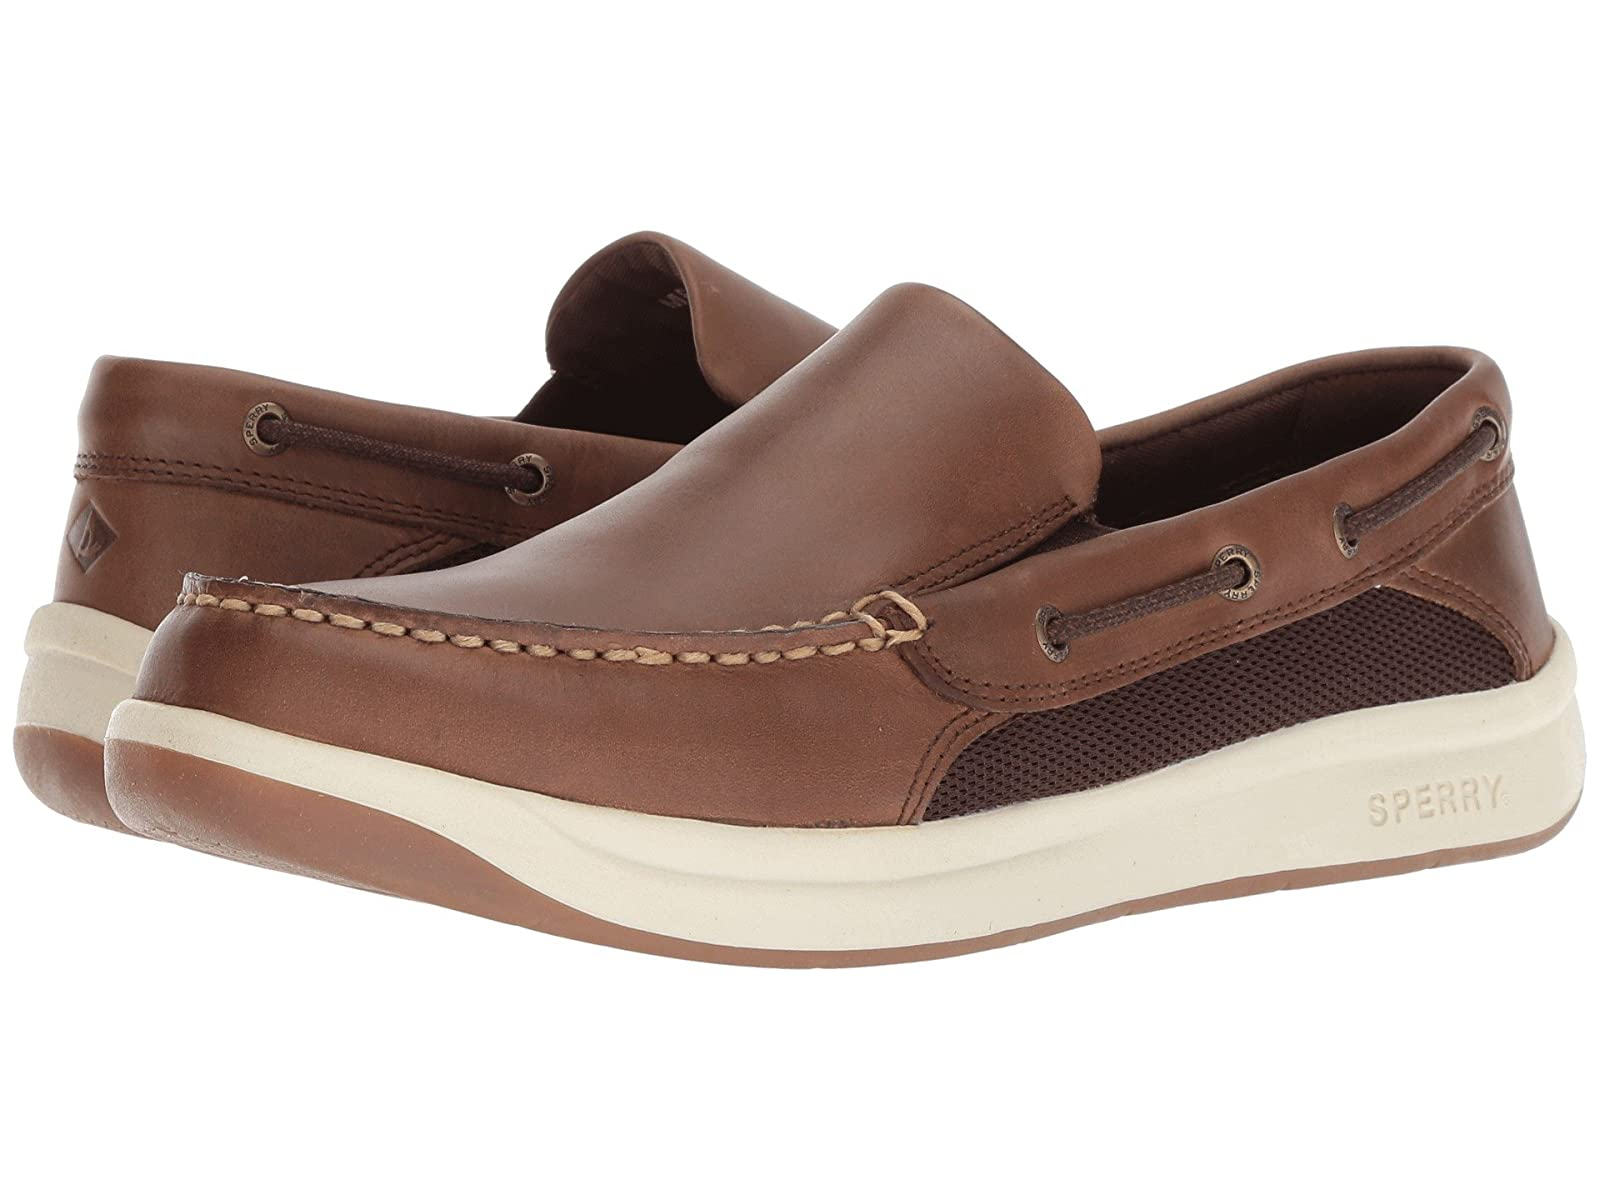 Sperry Convoy S/OCheap and distinctive eye-catching shoes